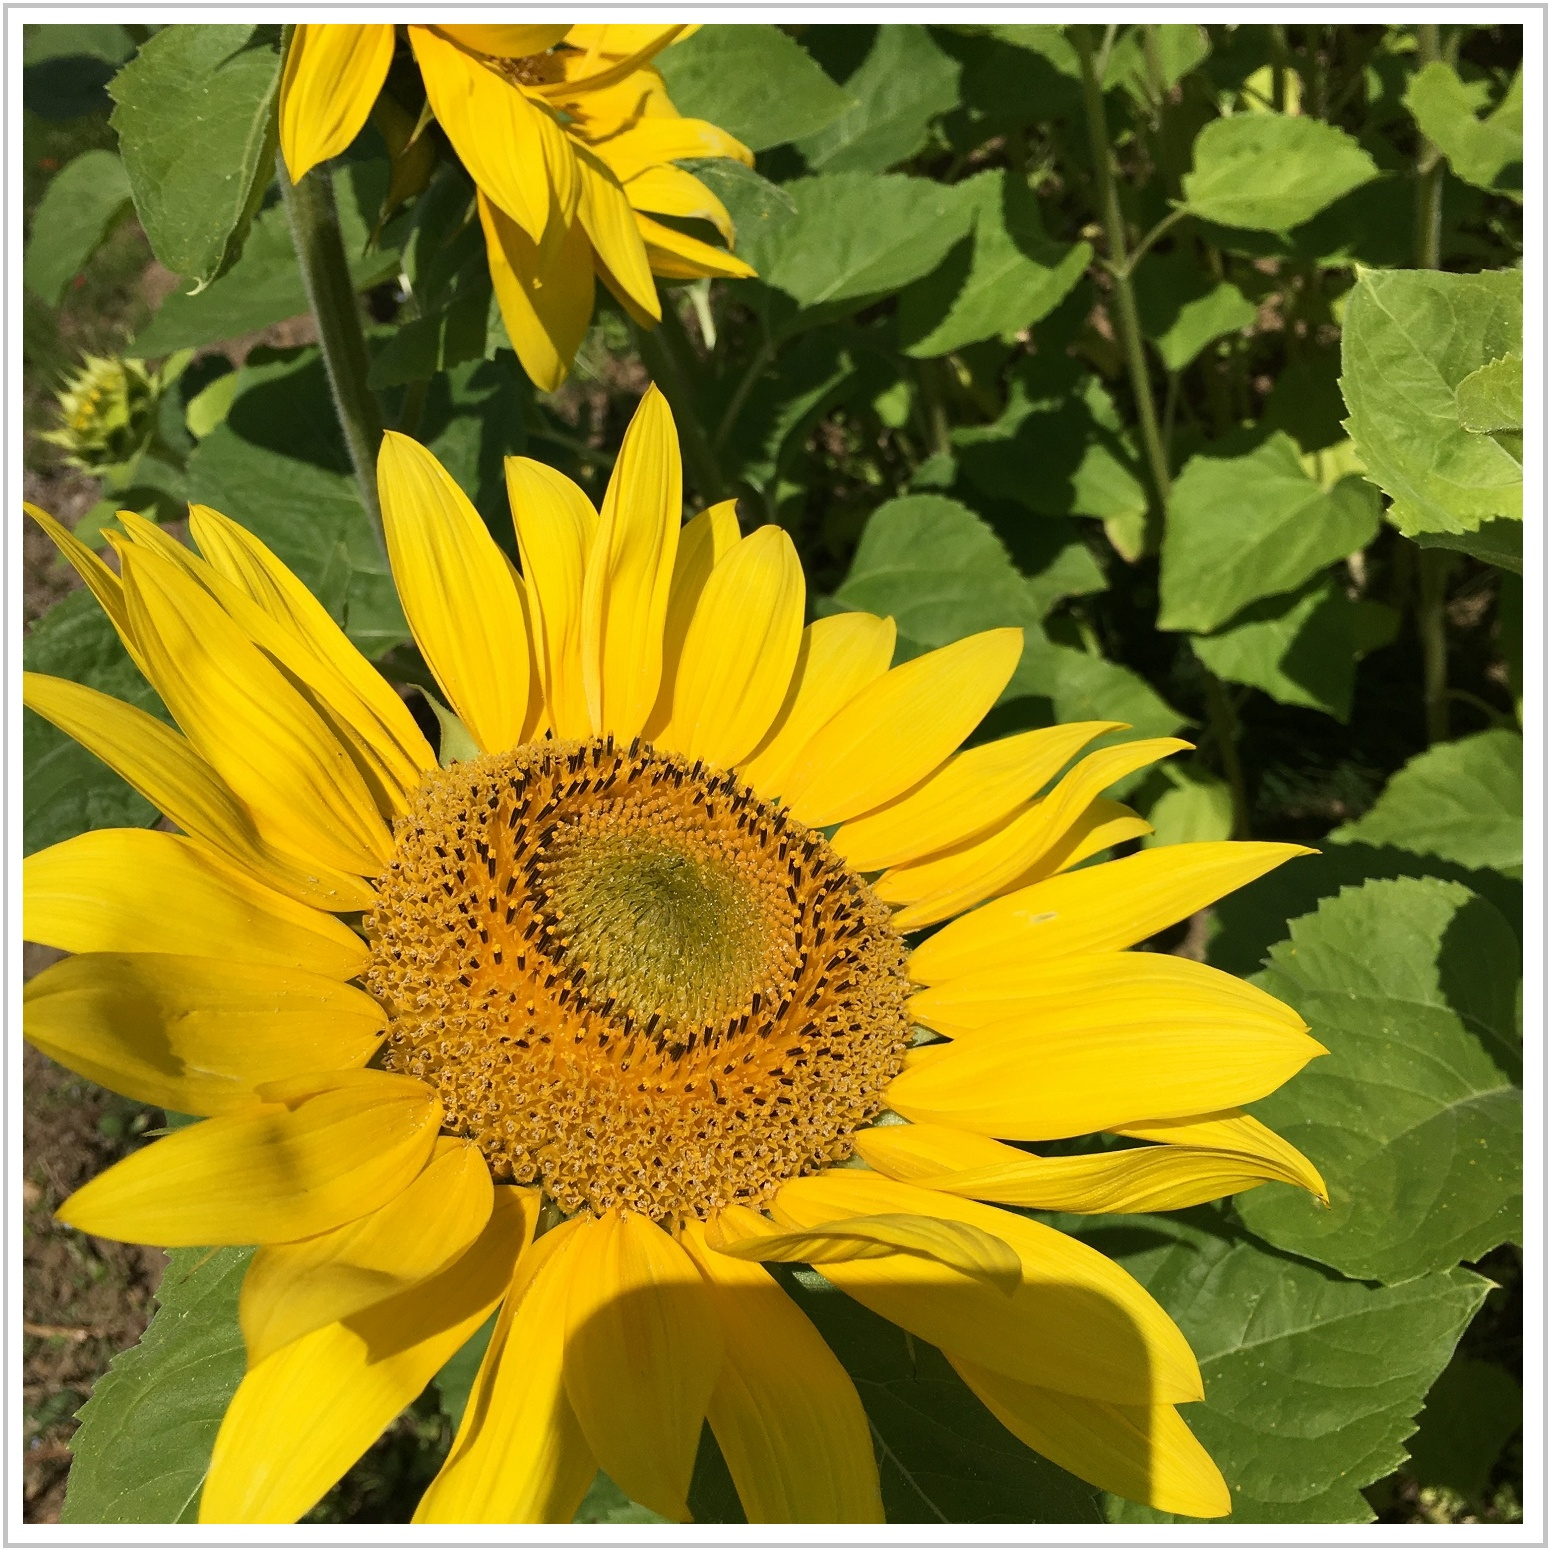 sunflower_5_708.jpg